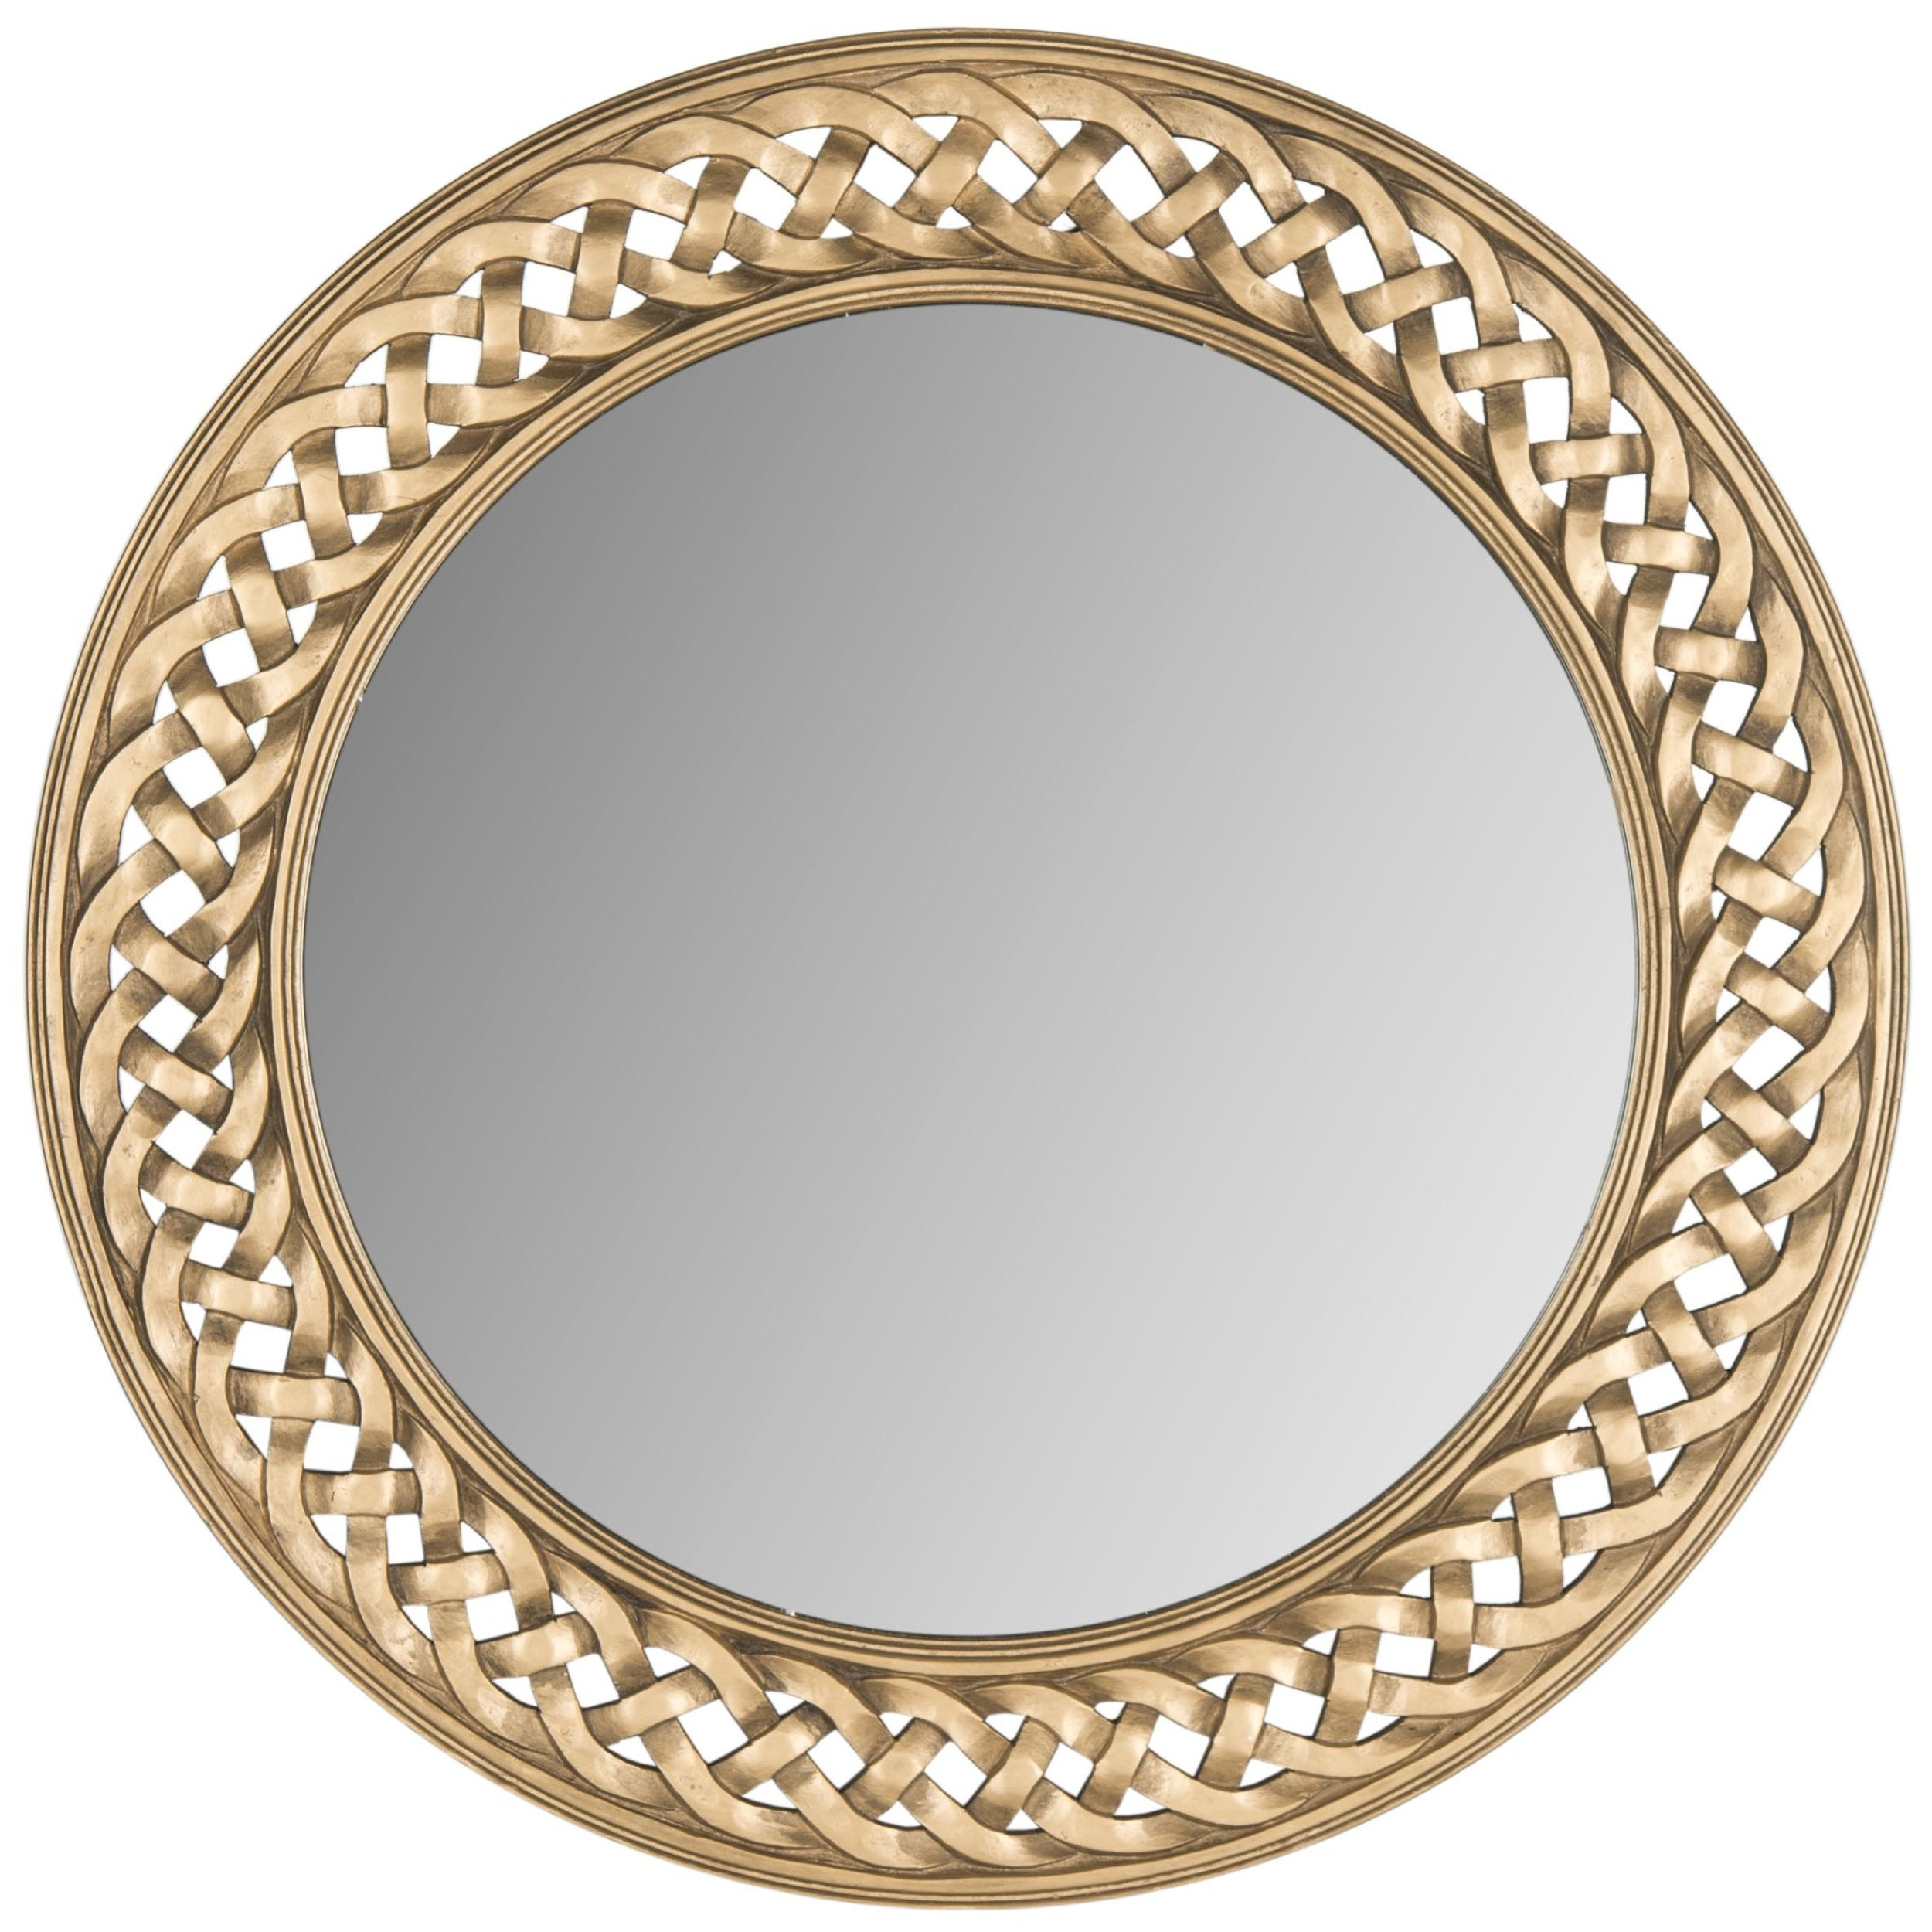 Gold Wall Mirrors You'll Love In 2019 | Wayfair (Image 6 of 20)